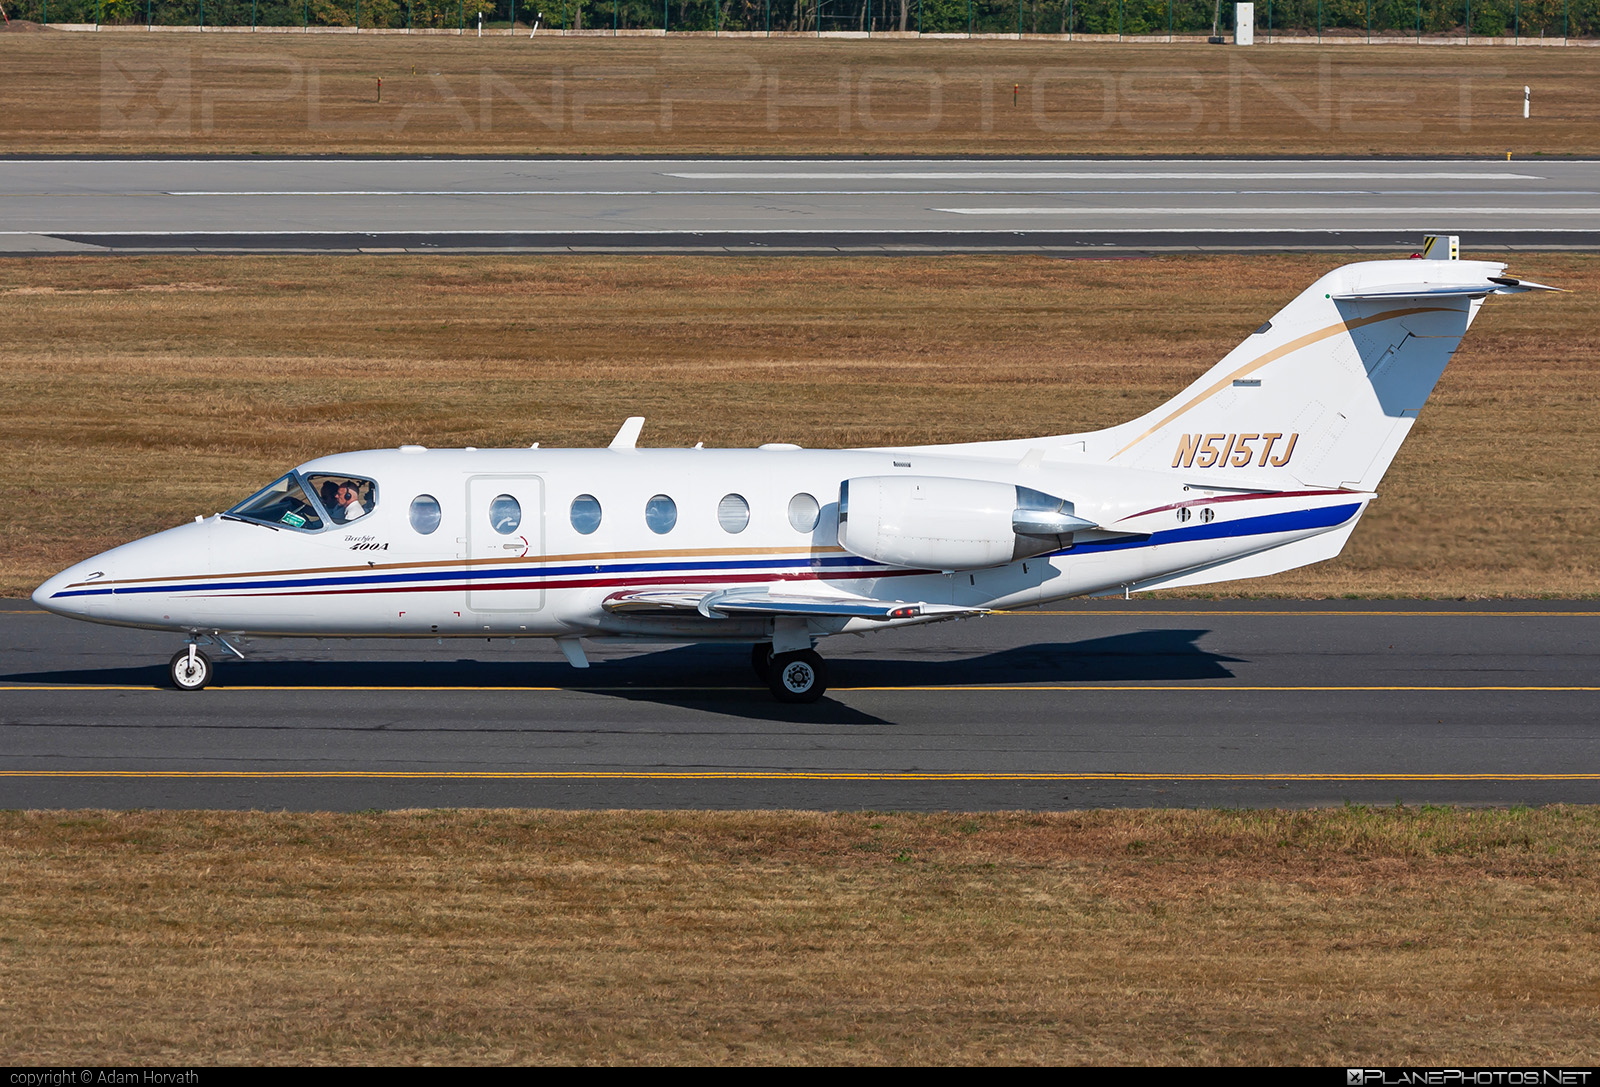 Raytheon Beechjet 400A - N515TJ operated by Private operator #beech400 #beechcraft400 #beechjet400 #beetjet400a #raytheon #raytheonbeetjet400 #raytheonbeetjet400a